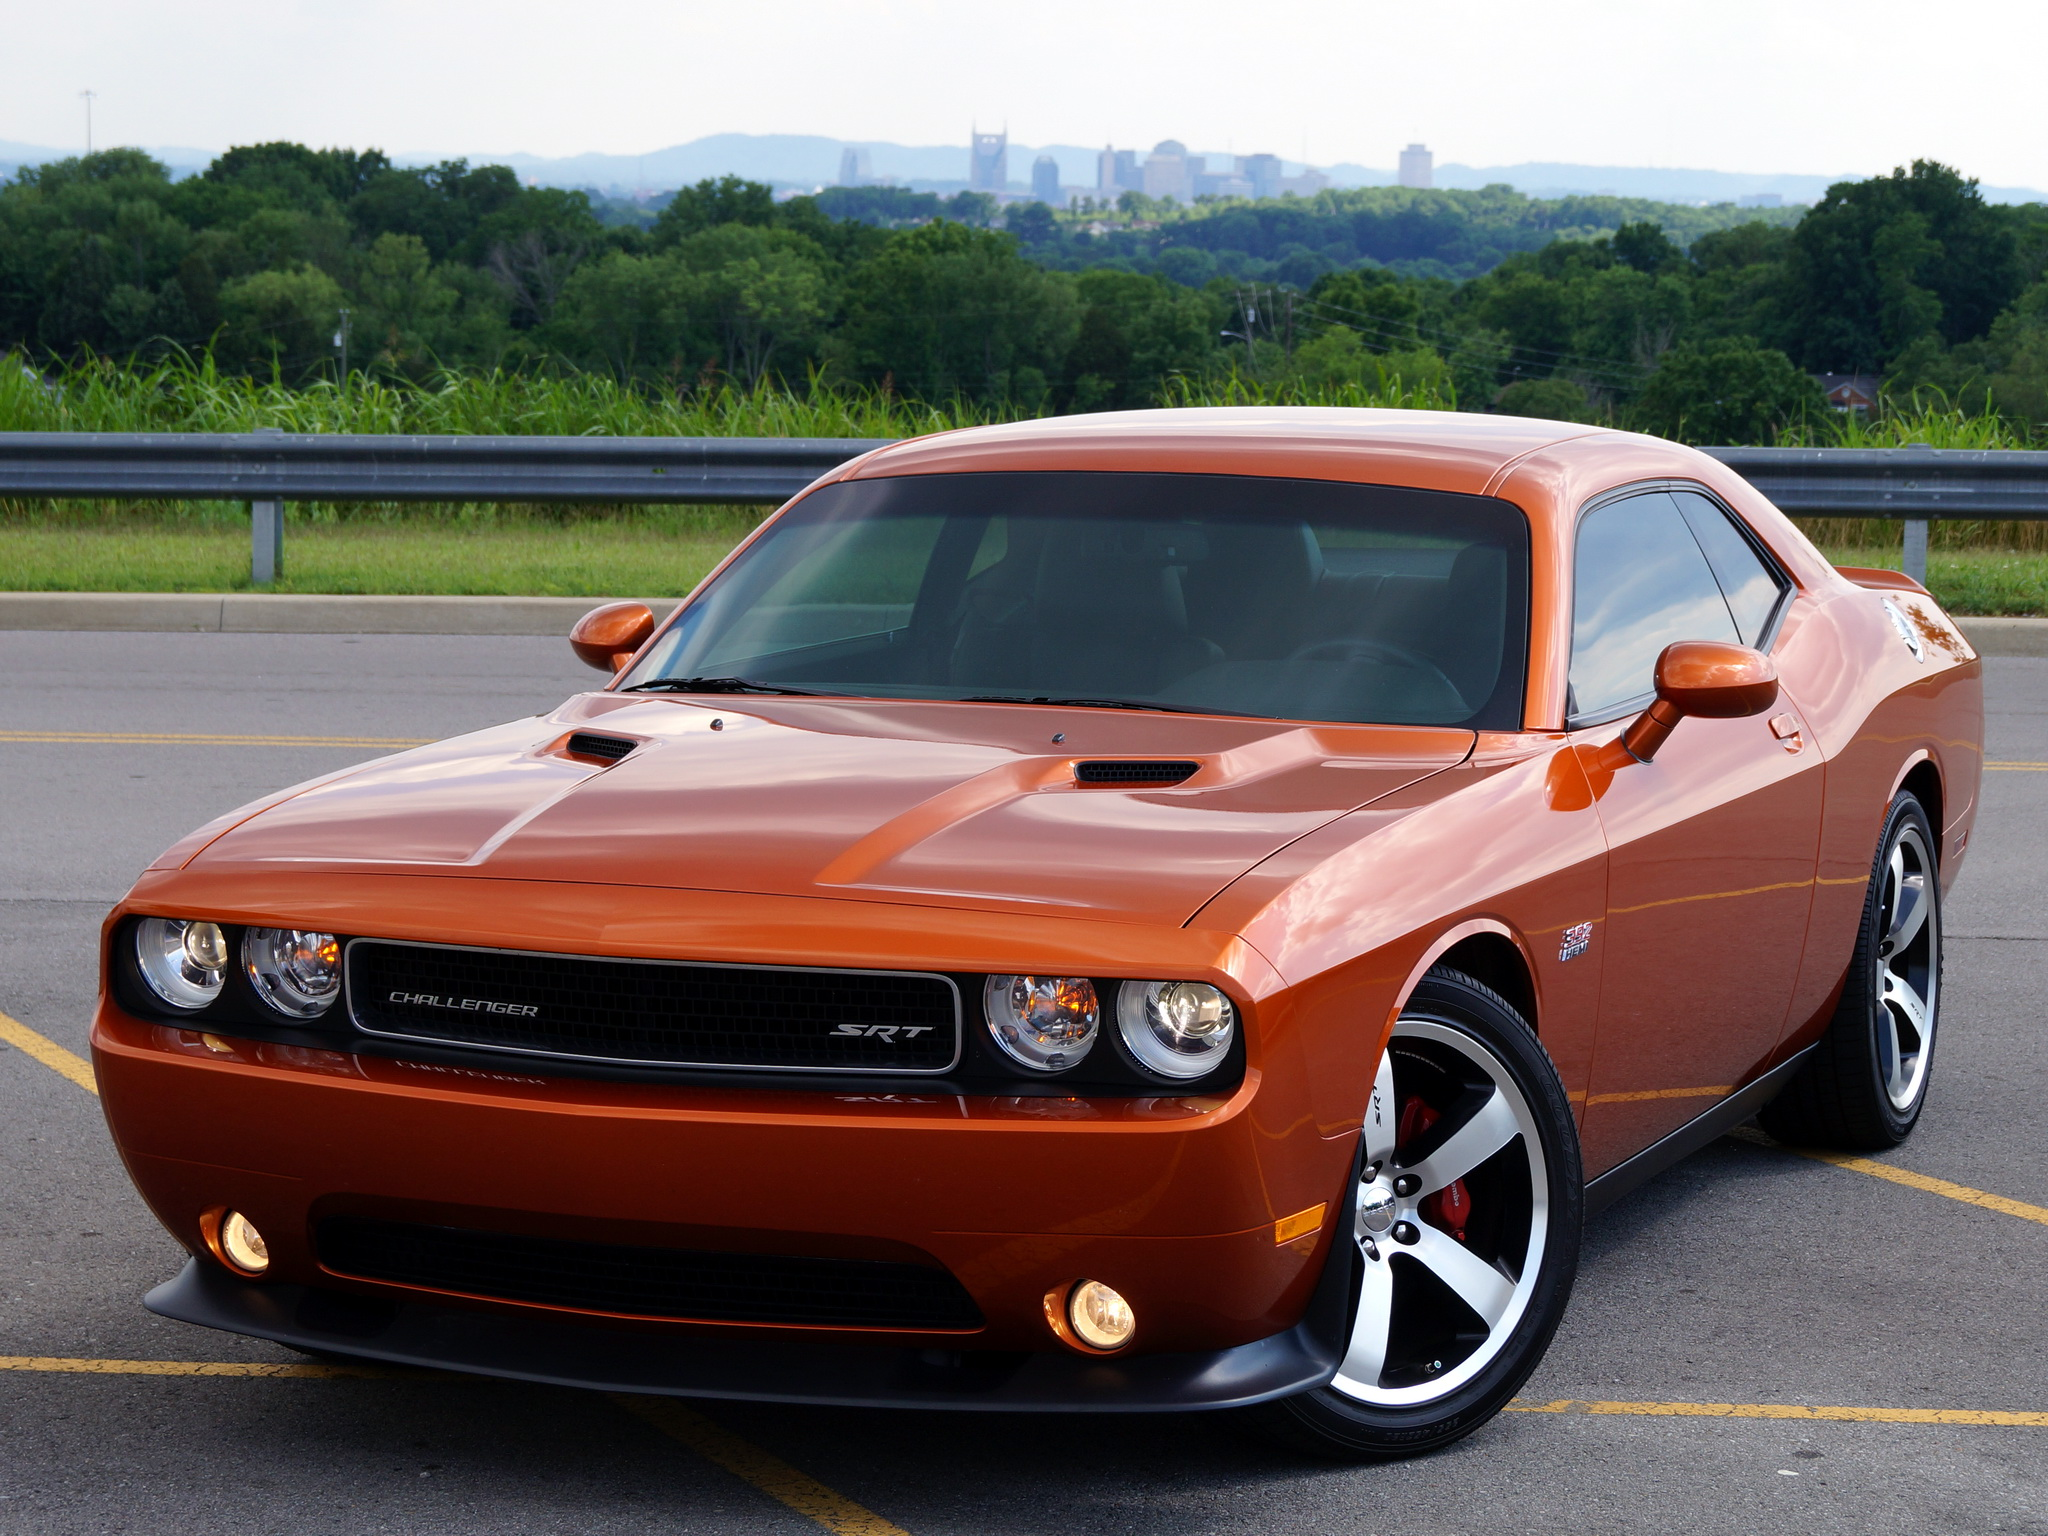 2012 Dodge Challenger SRT8 Wallpaper 2048x1536